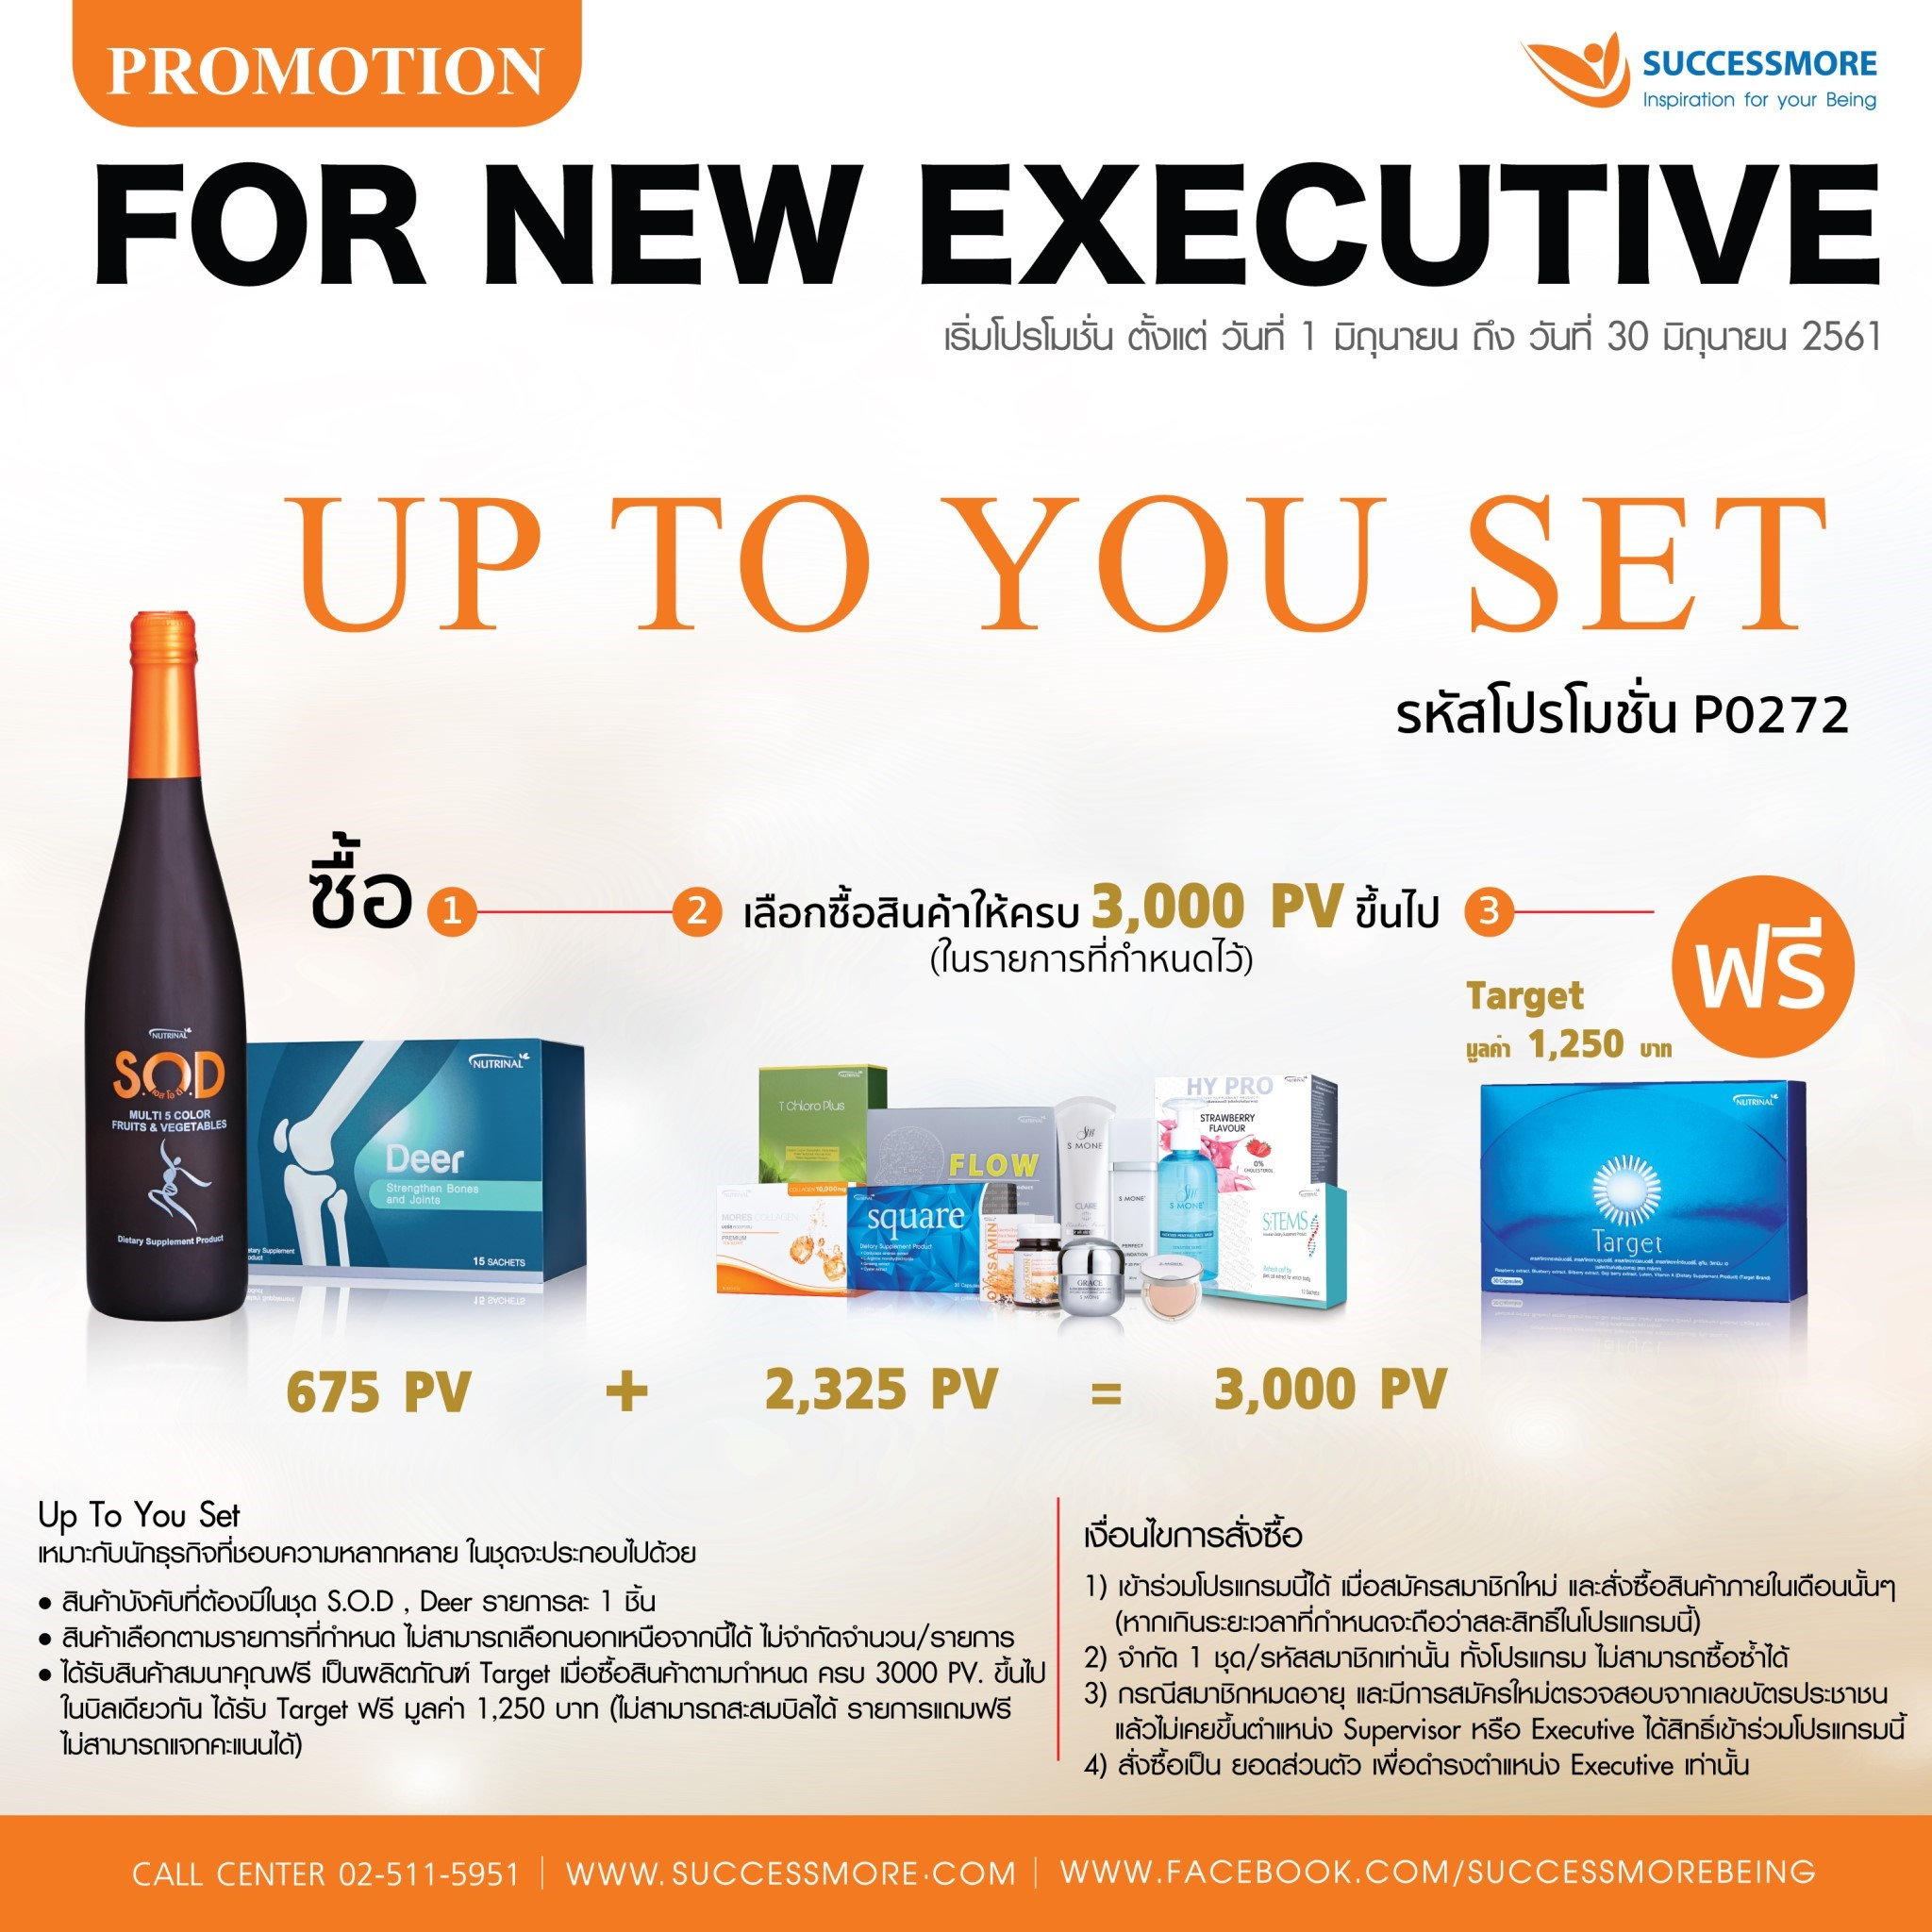 SUCCESSMORE PROMOTION FOR NEW EXECUTIVE (1)